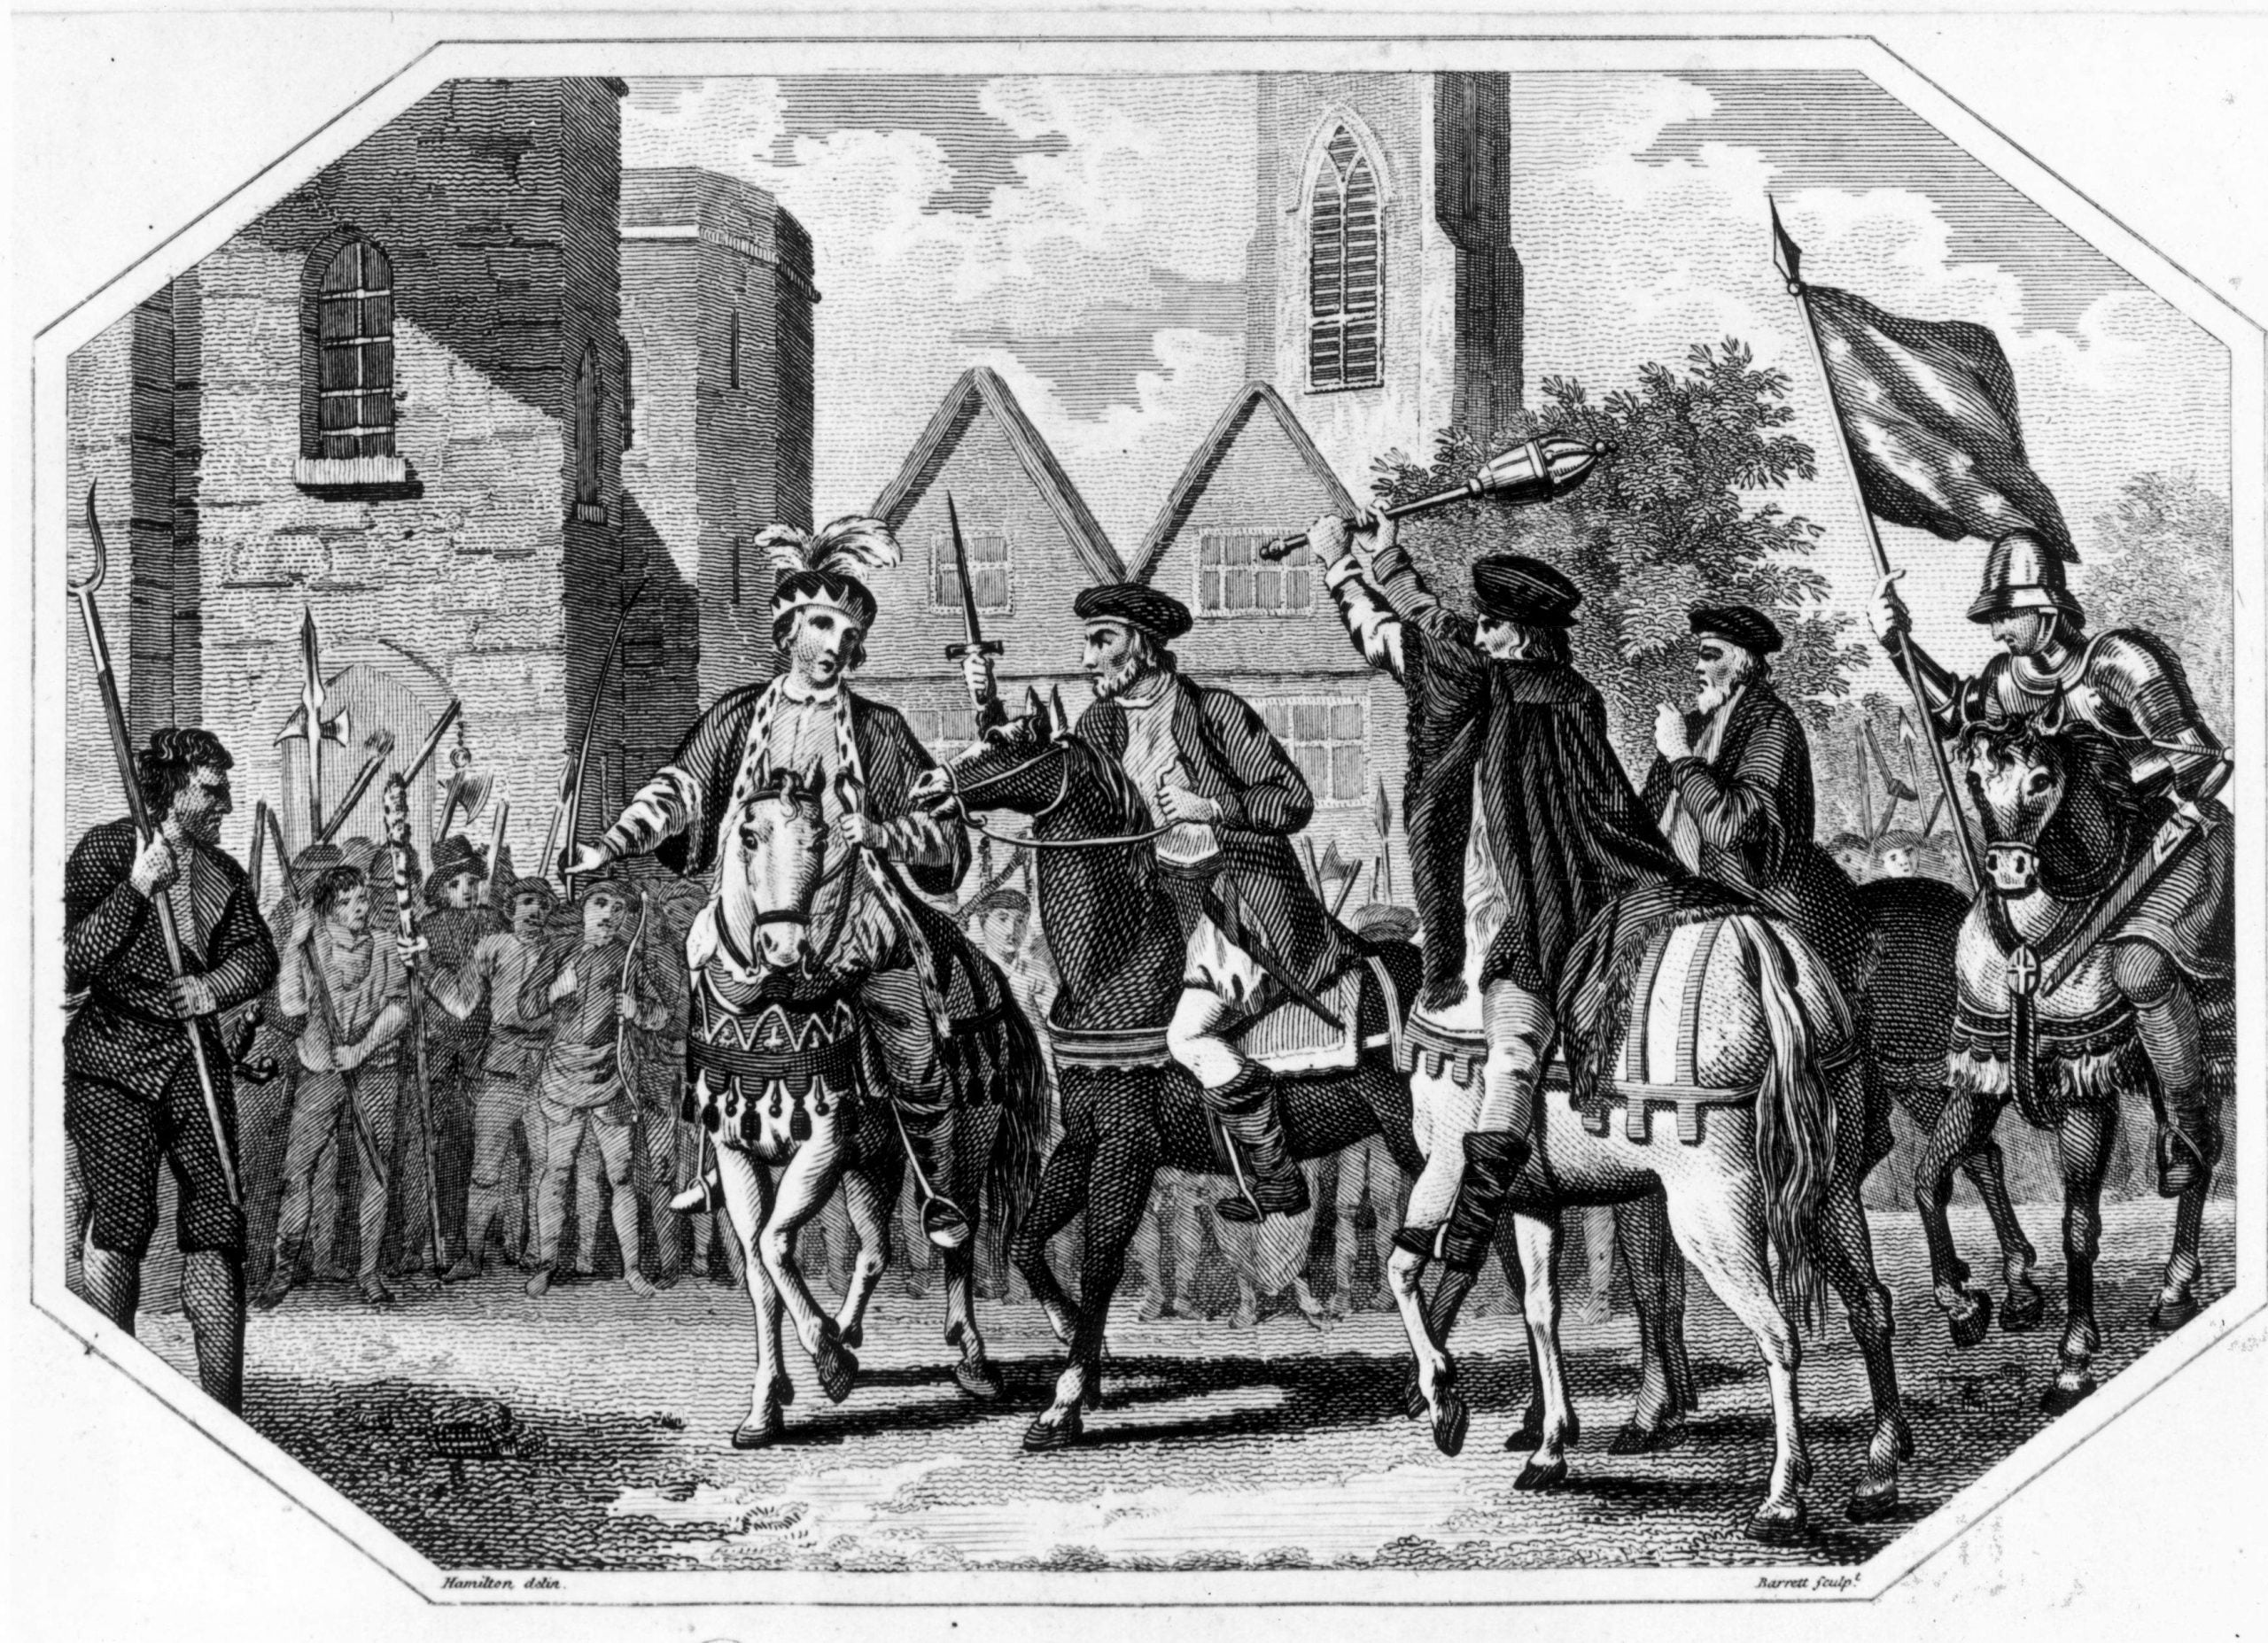 Reading the riot act: the true story of the Great Revolt